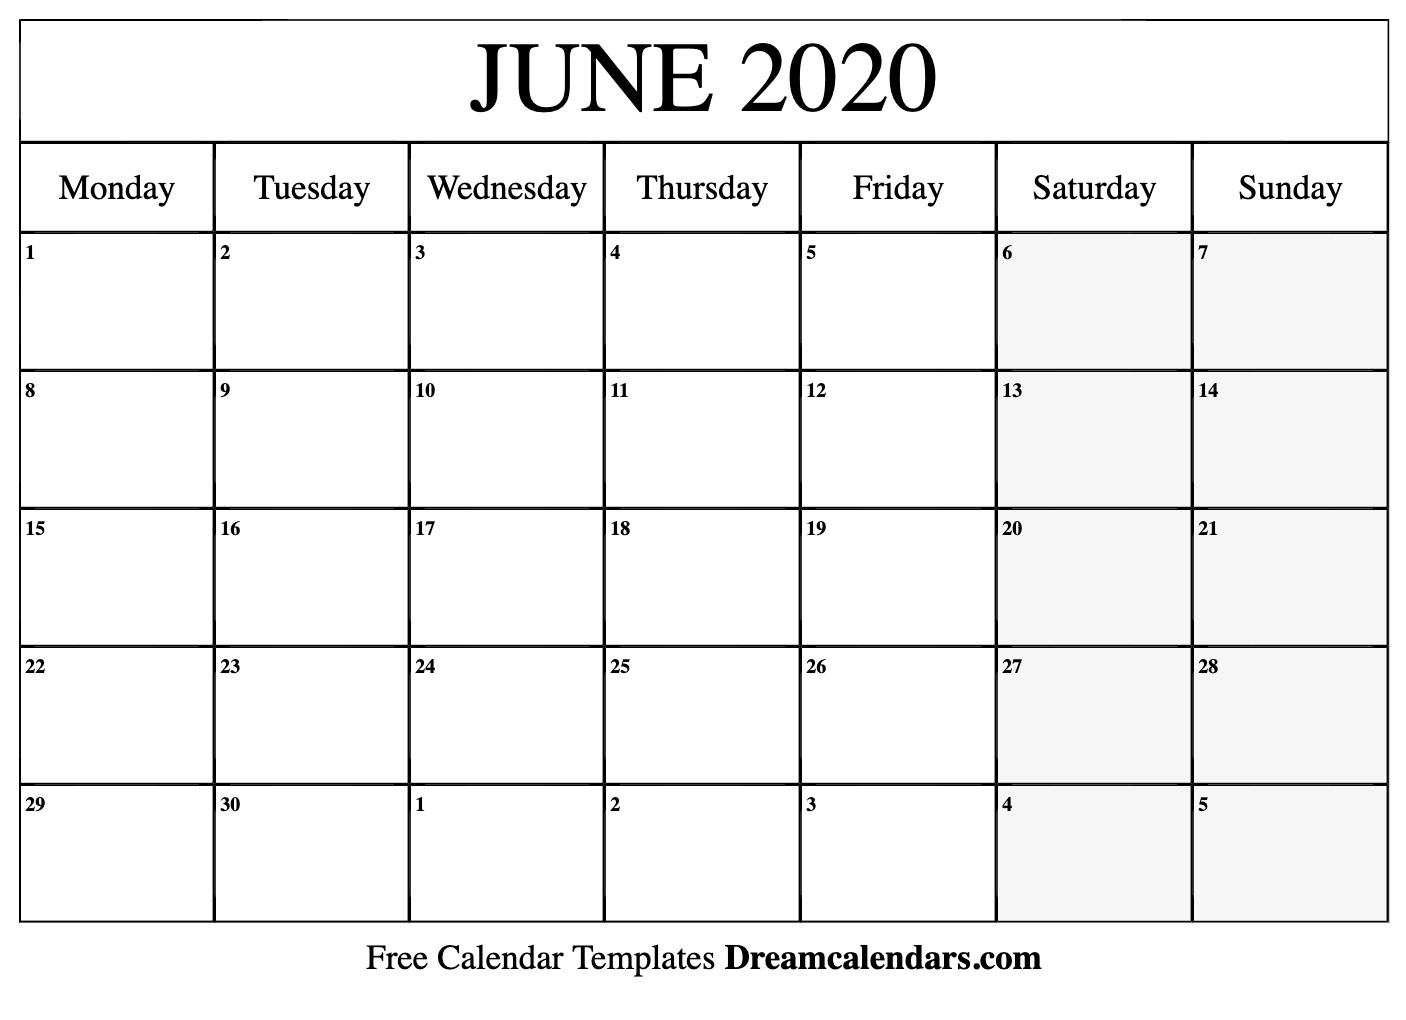 Printable June 2020 Calendar with Free Printed Calendars From June 2019 To June 2020